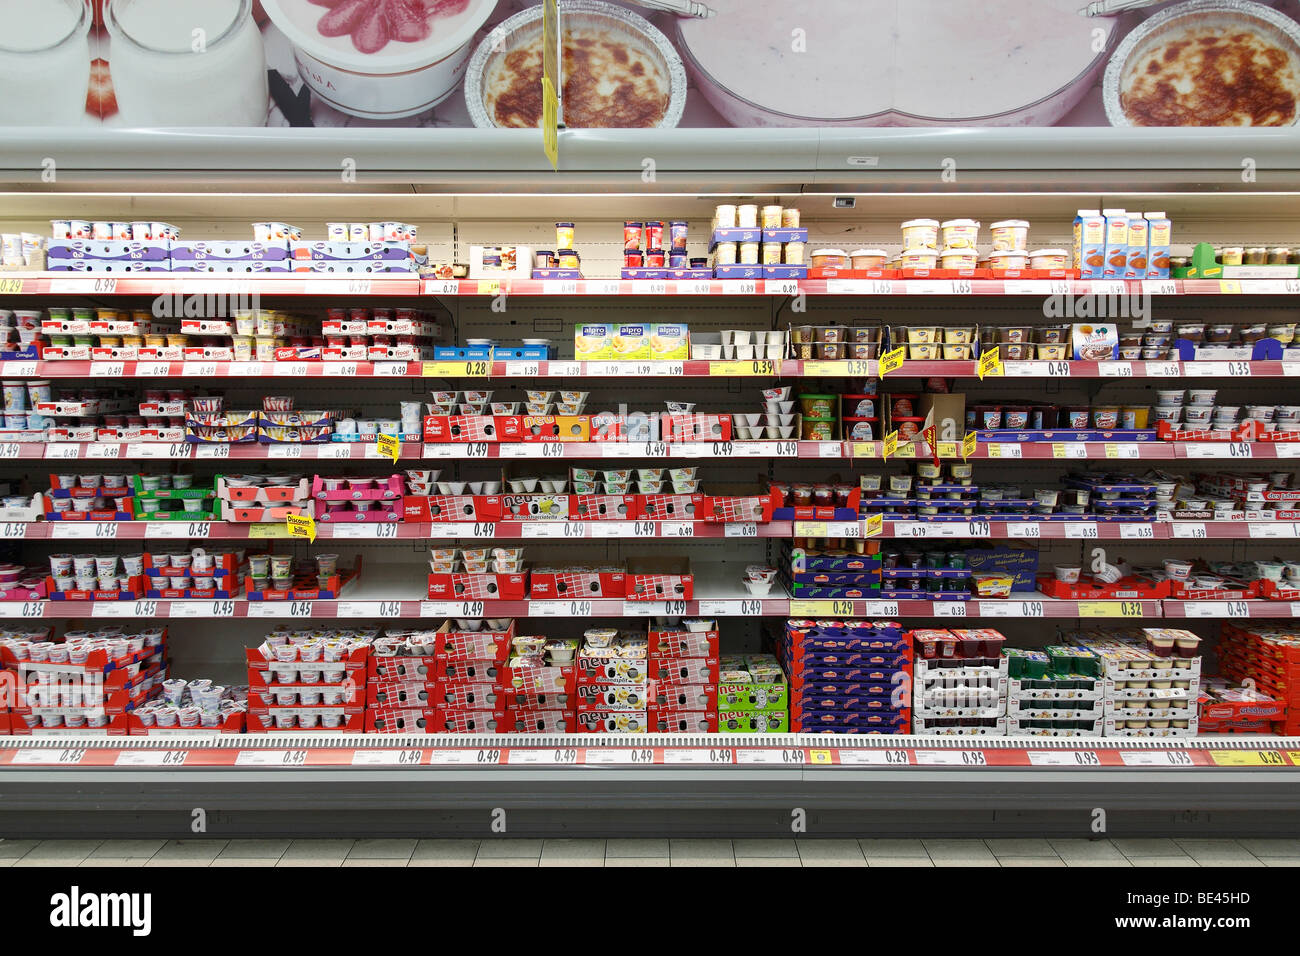 shelf with yogurt cups in a supermarket - Stock Image